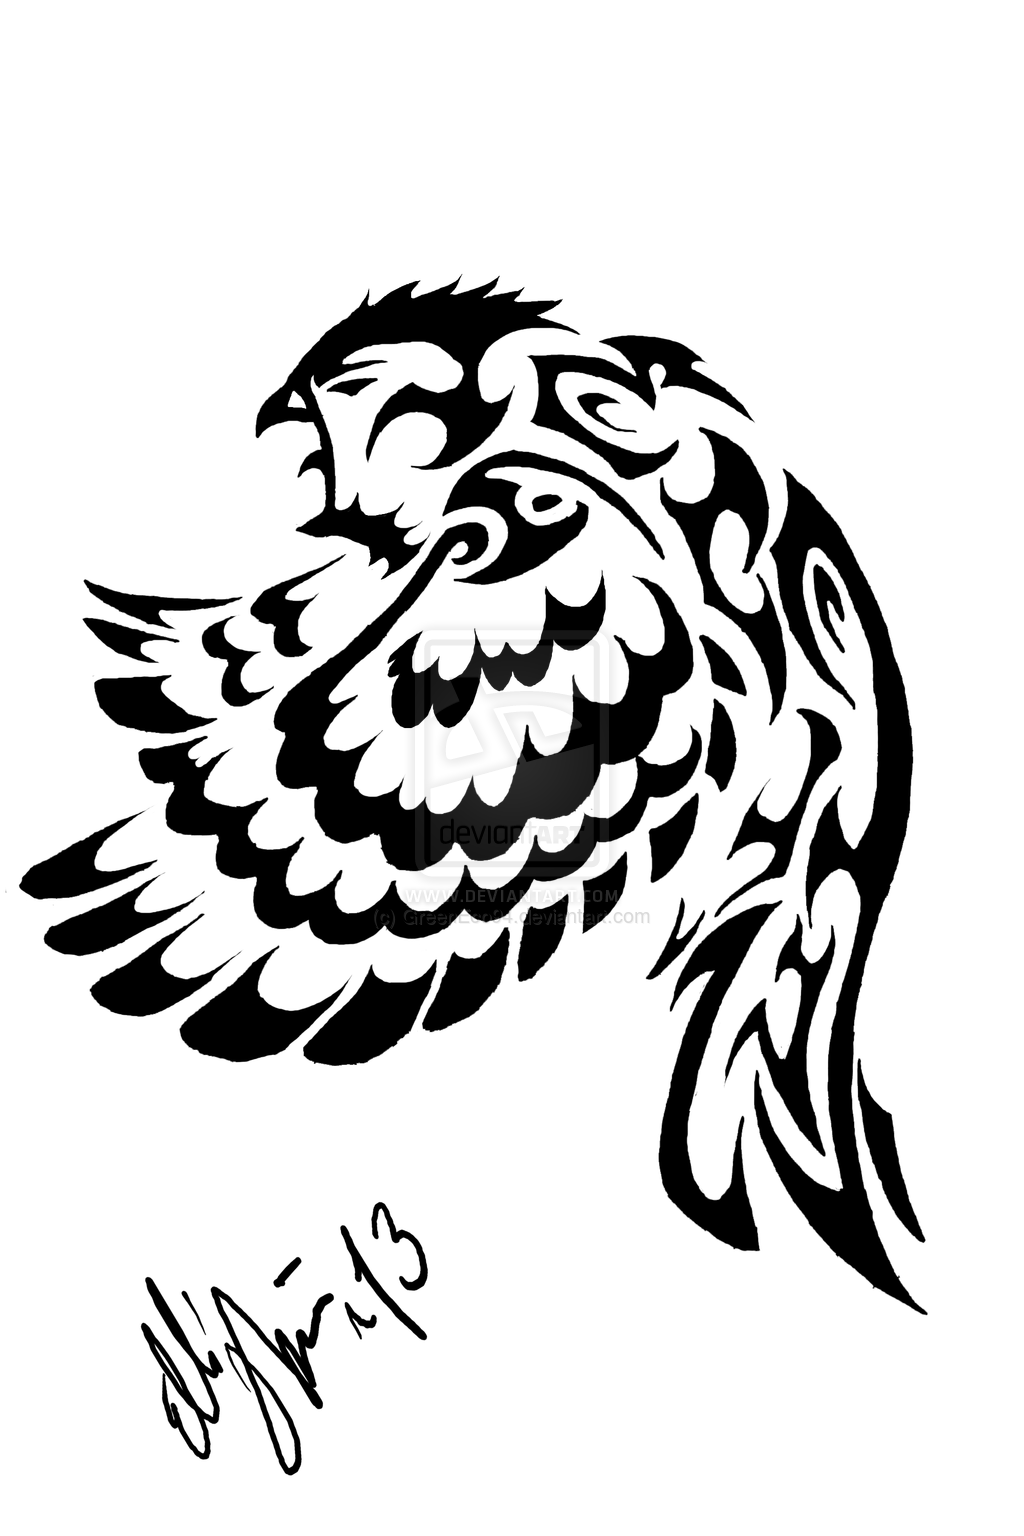 tribal Owl Tattoo   Tribal owl tattoo desing by GreenEco94. tribal Owl Tattoo   Tribal owl tattoo desing by GreenEco94   owl